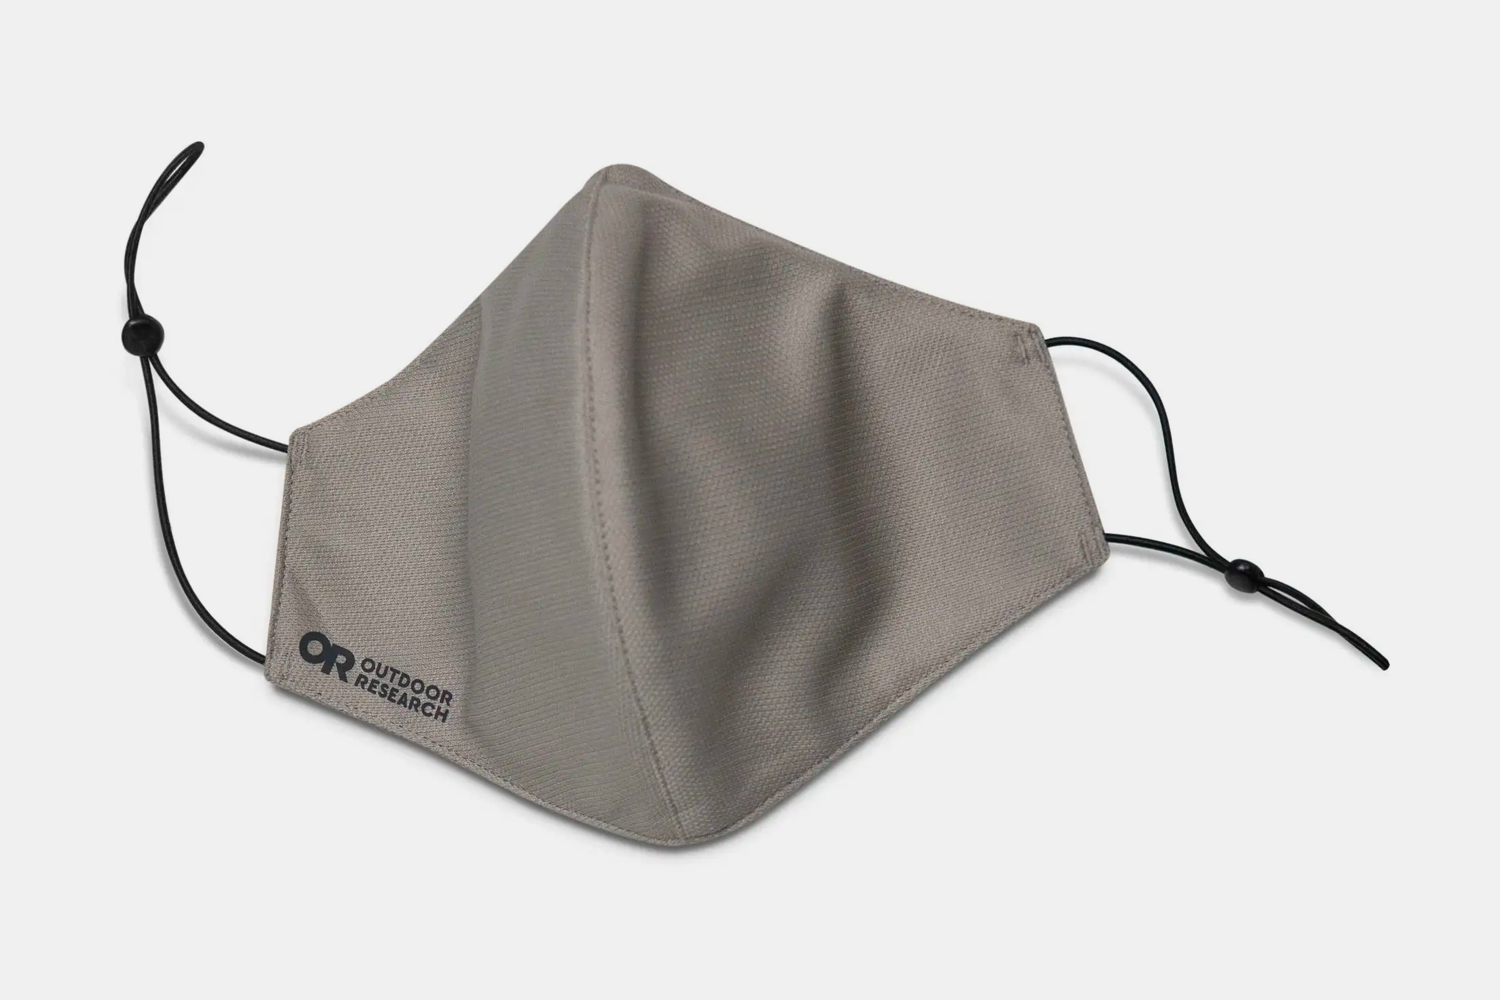 Outdoor Research Face Cover Kit